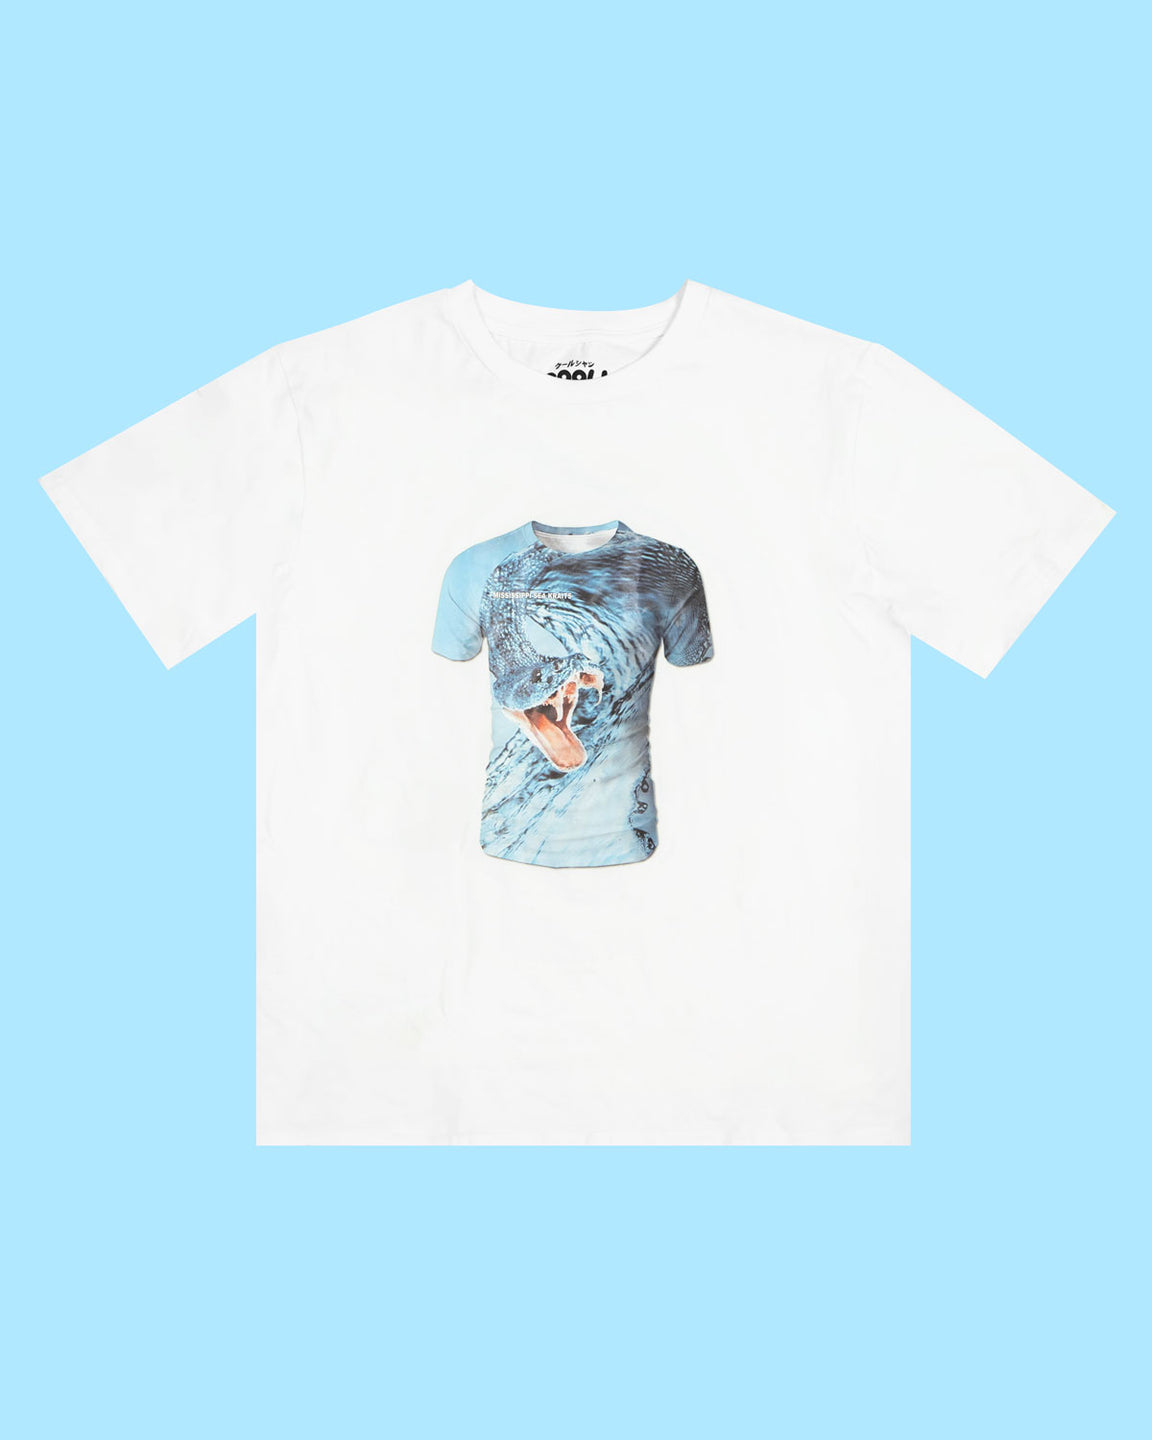 The Sea Krait Tee